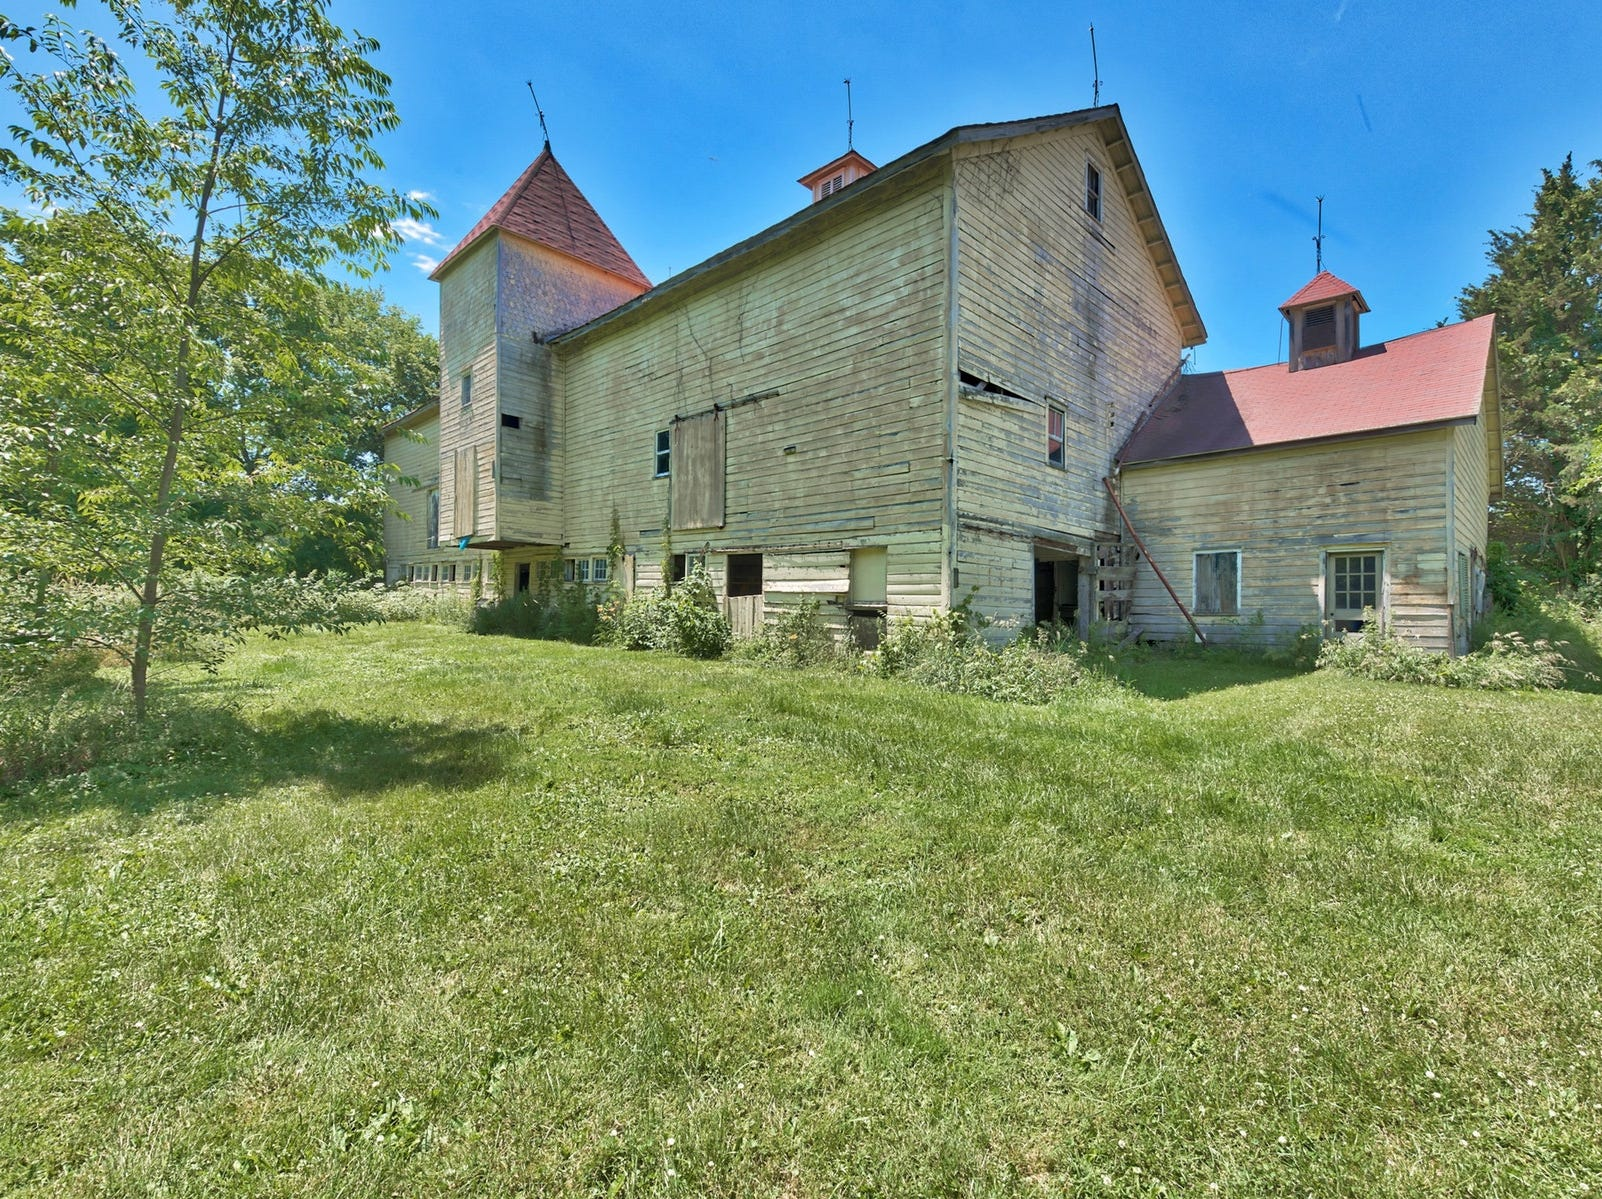 Built in  the mid 1780s and also known as The John I. Crawford Farm, Hopewell Farm in Orange County it is one of the best preserved farms from that time and remains an iconic landmark in the town of Crawford.